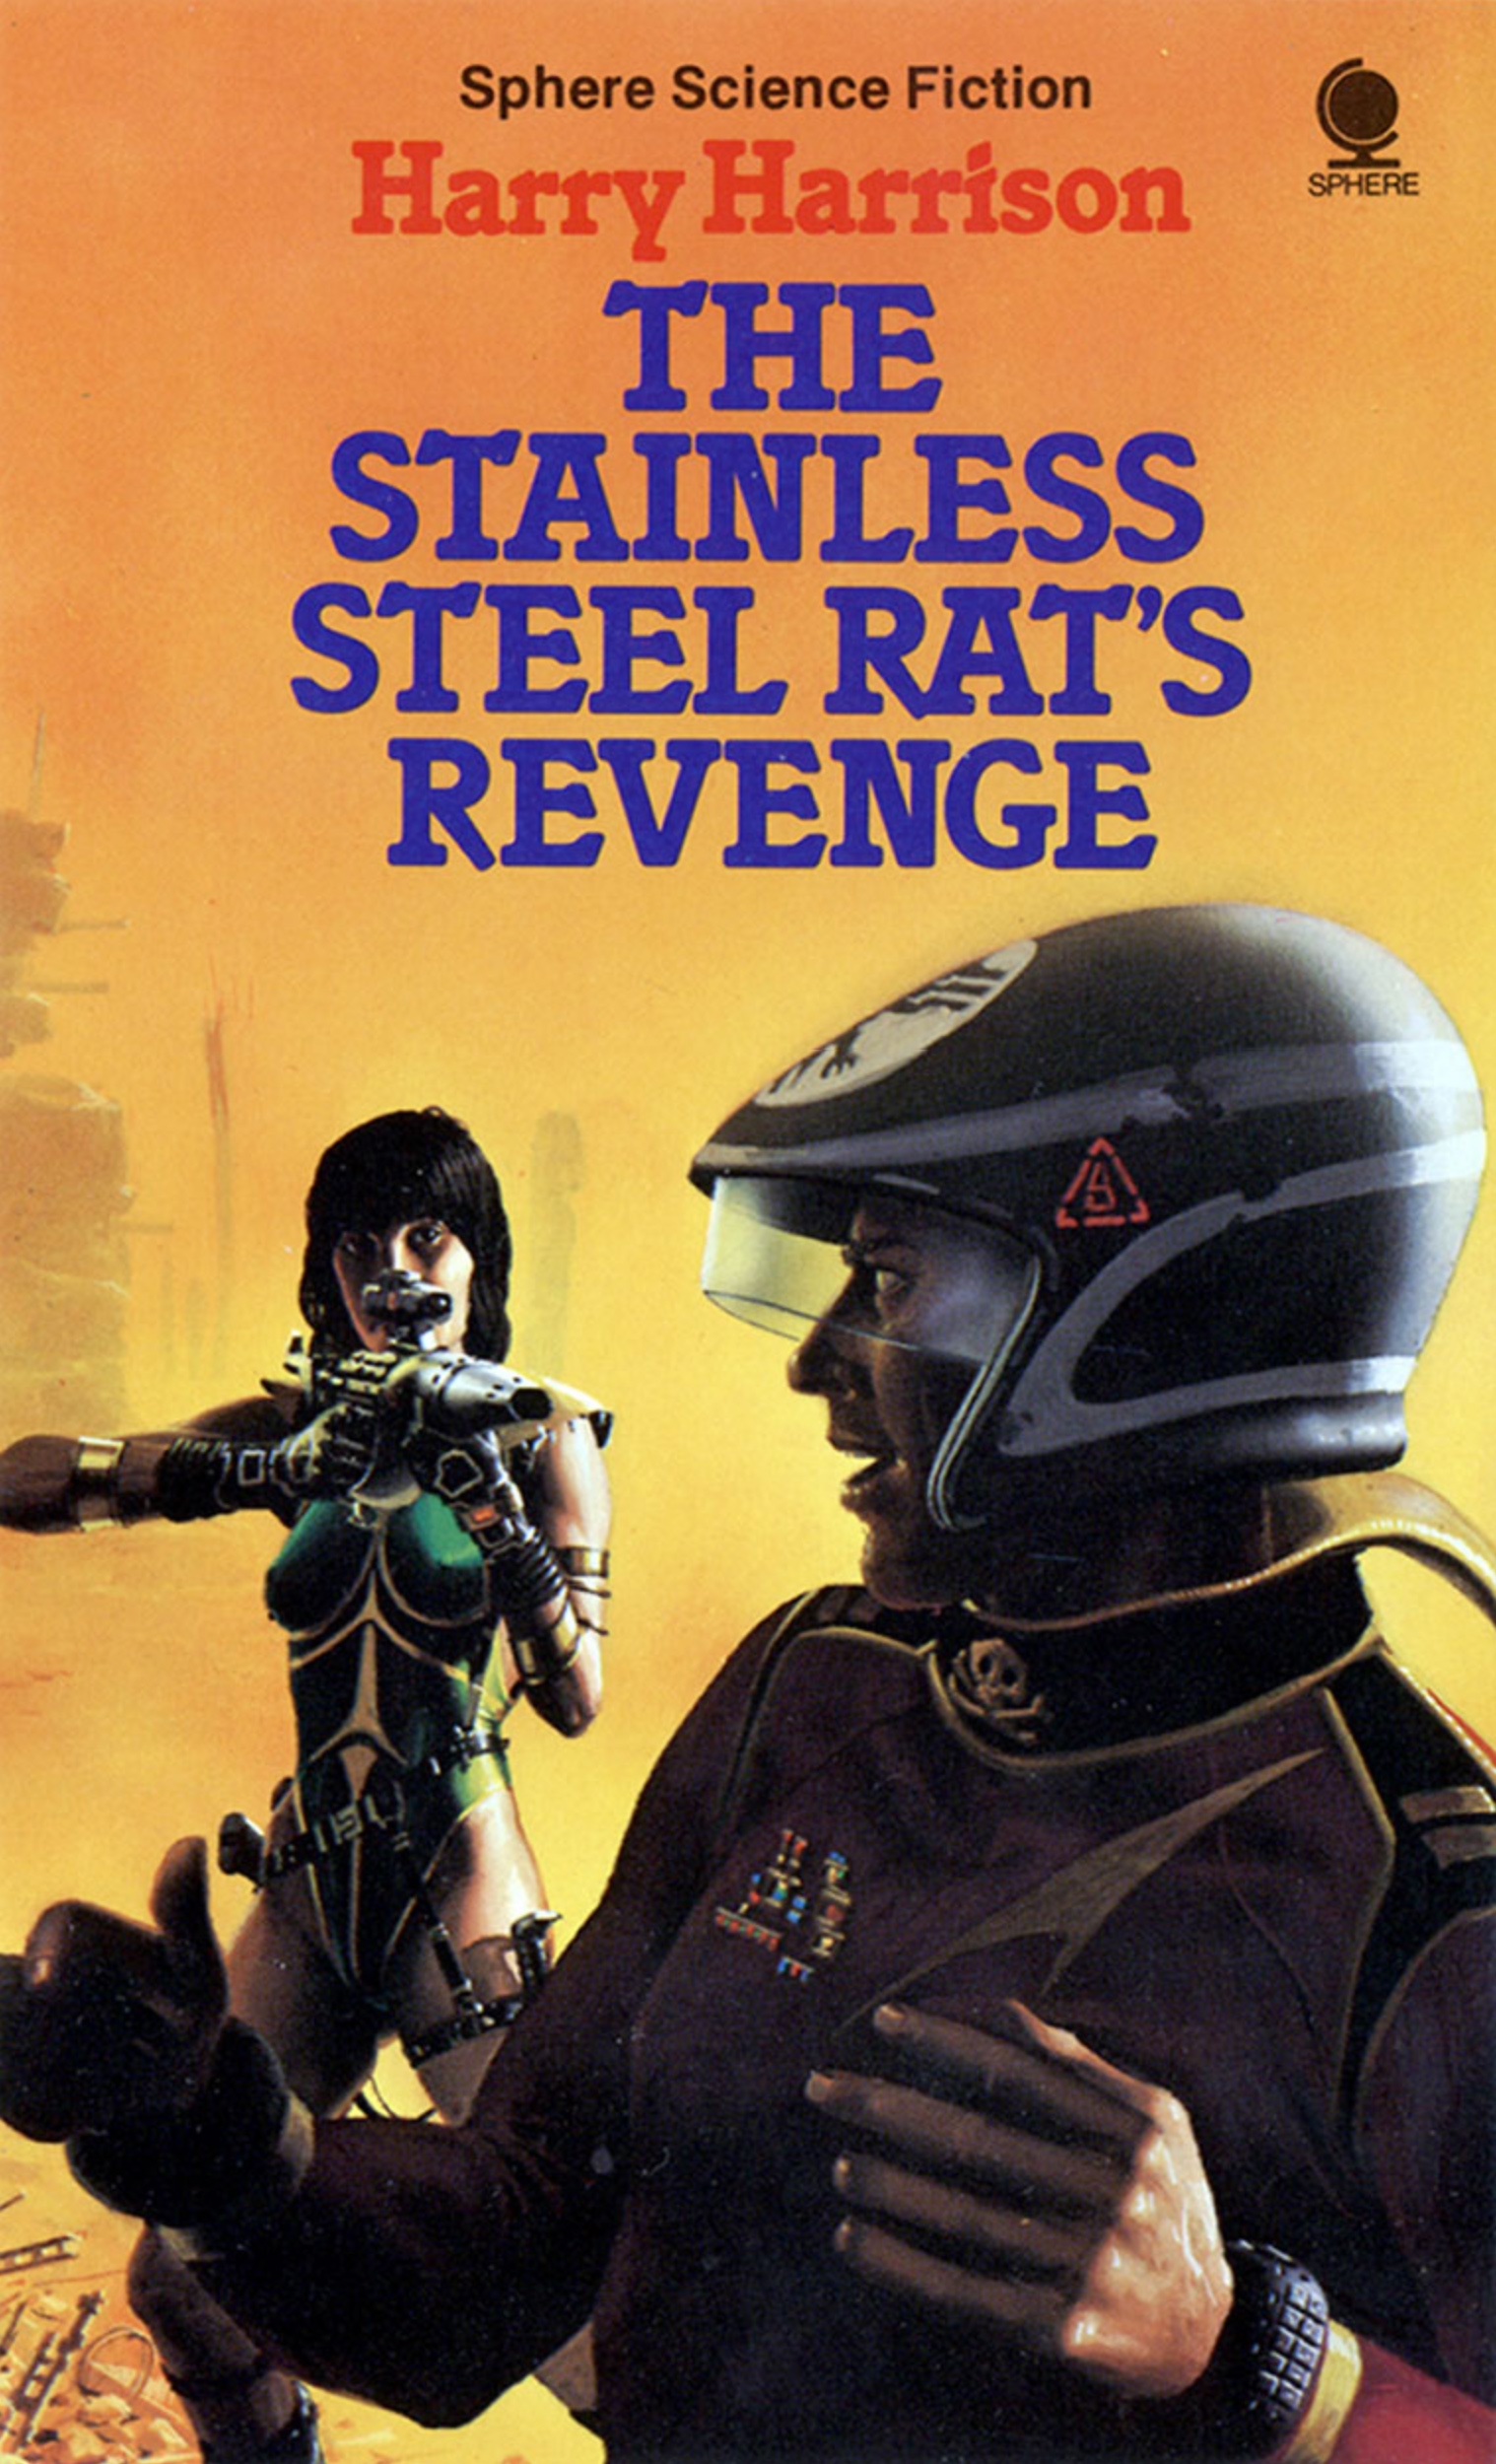 Peter Elson - The Stainless Steel Rats Revenge